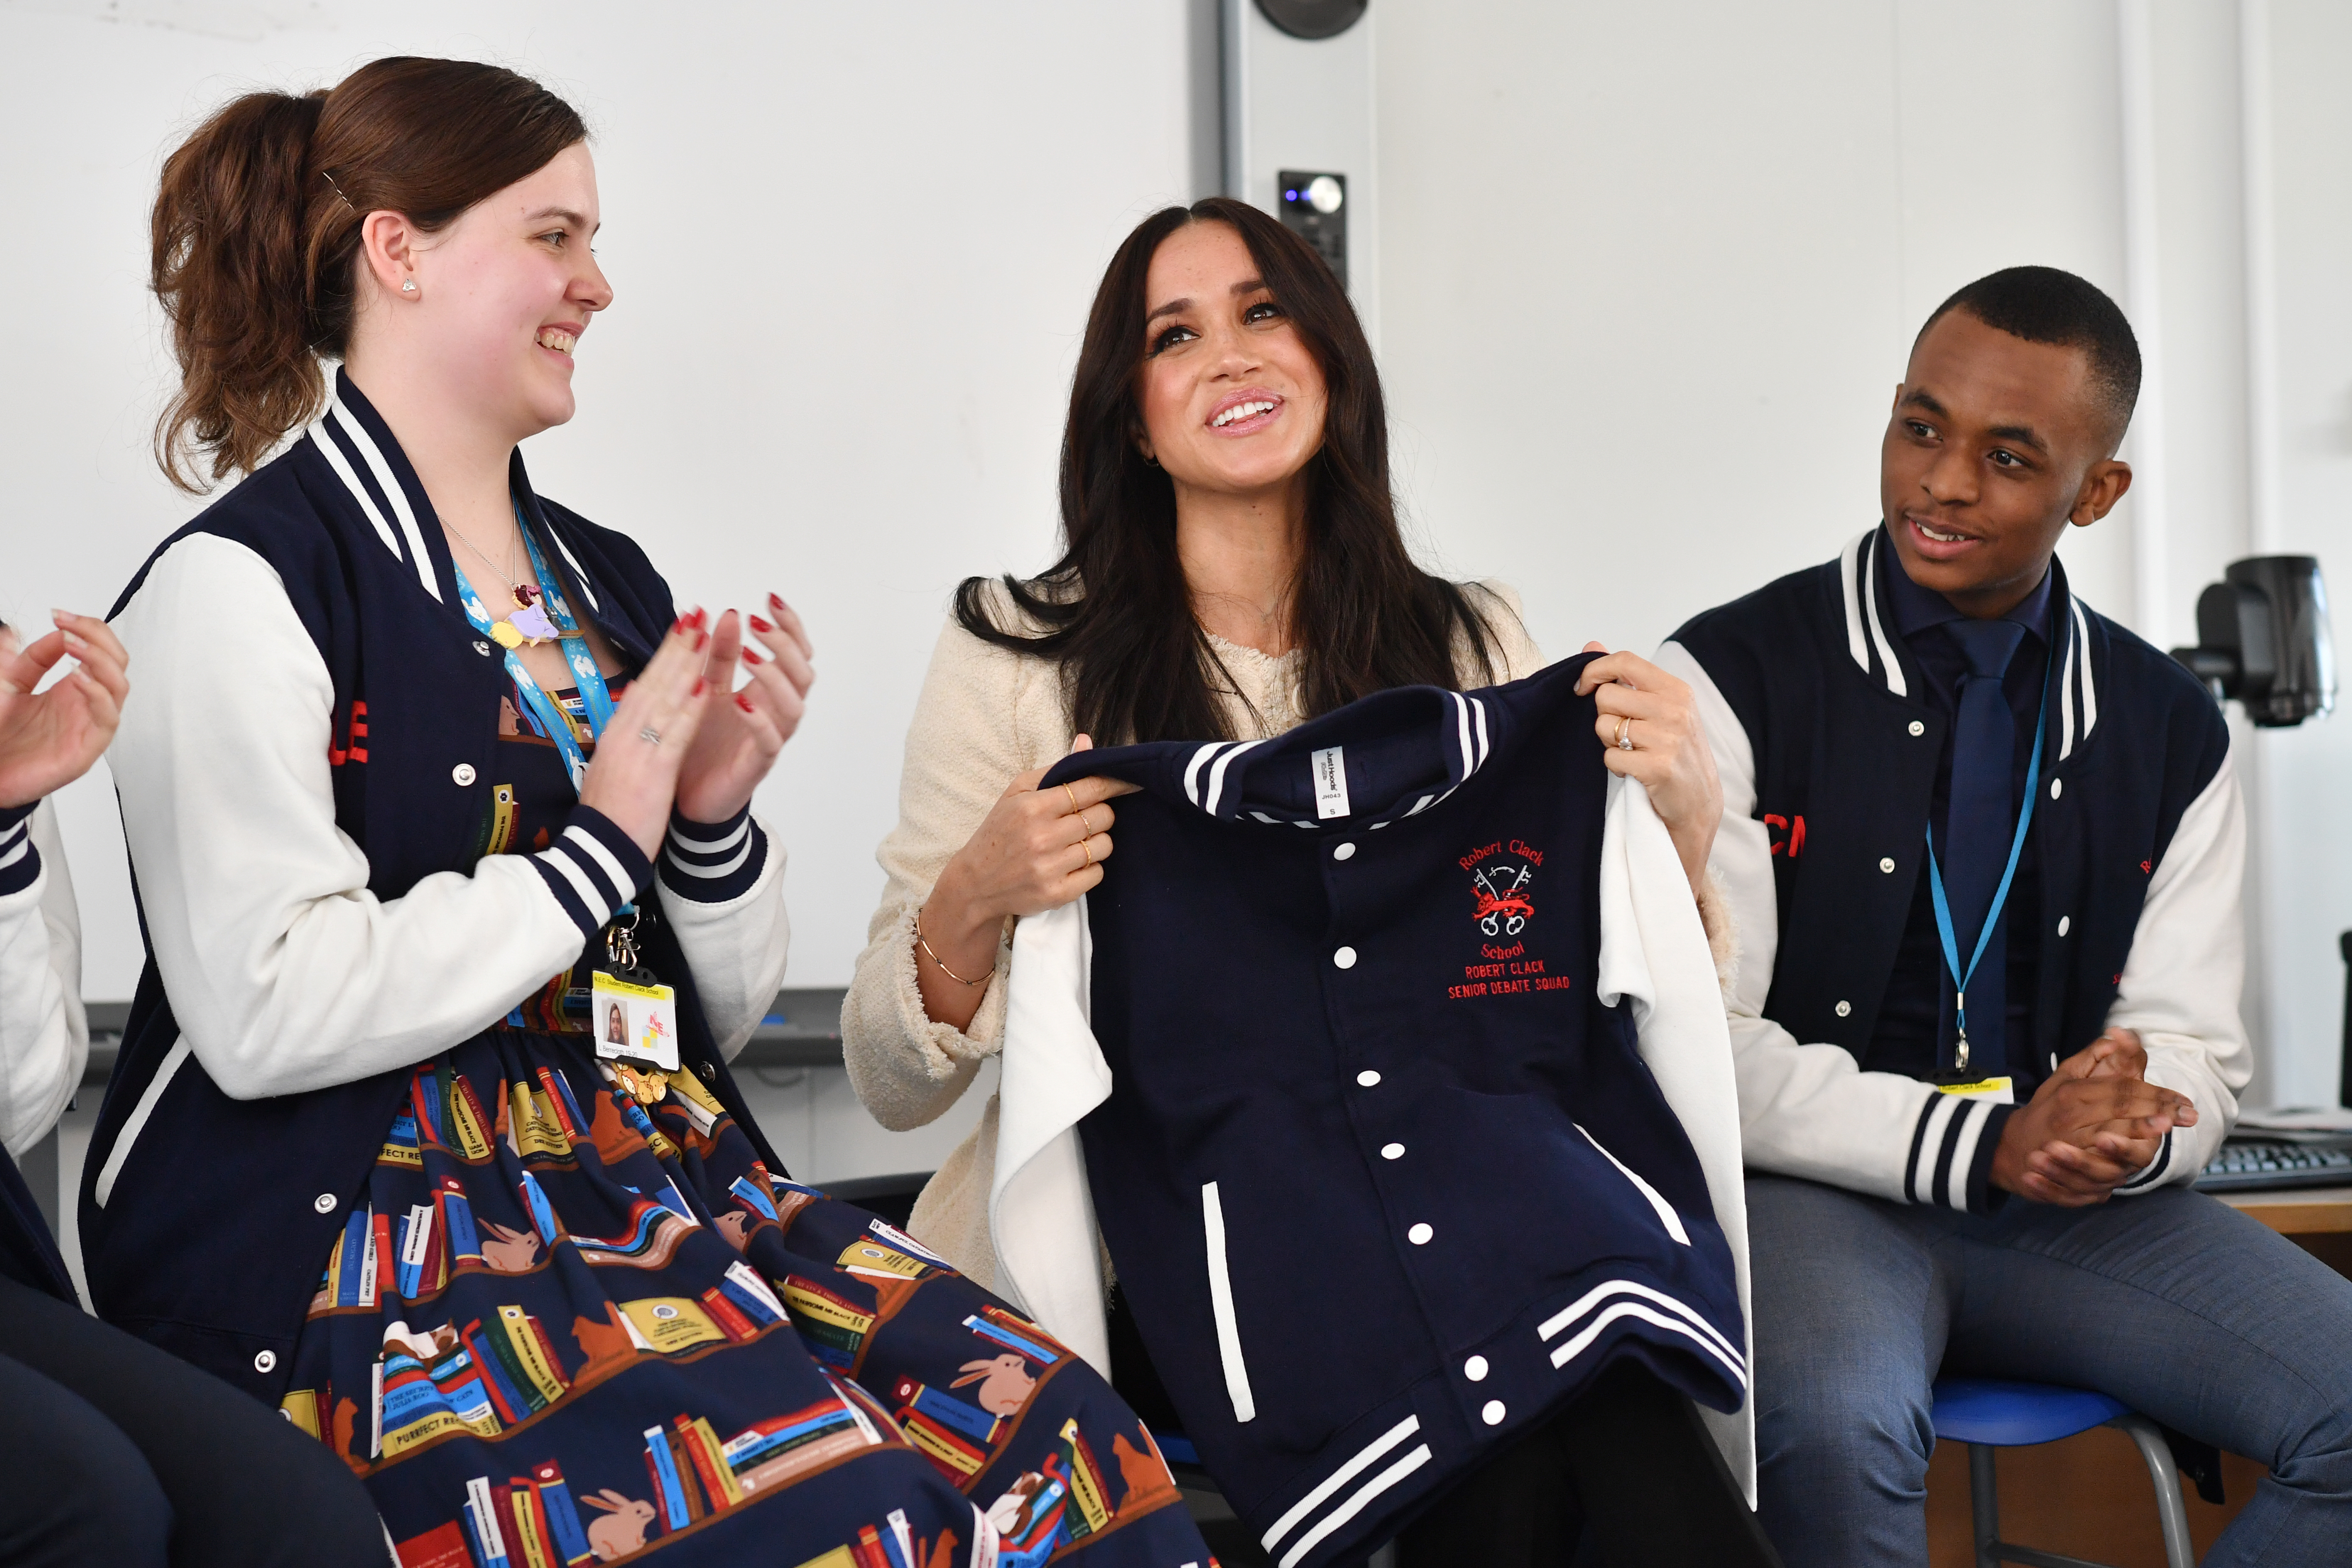 The Duchess of Sussex is presented with an item of school clothing as she joins in a discussion of the 'Senior Debate Squad' at the Robert Clack Upper School in Dagenham, Essex, during a surprise visit to celebrate International Women's Day.